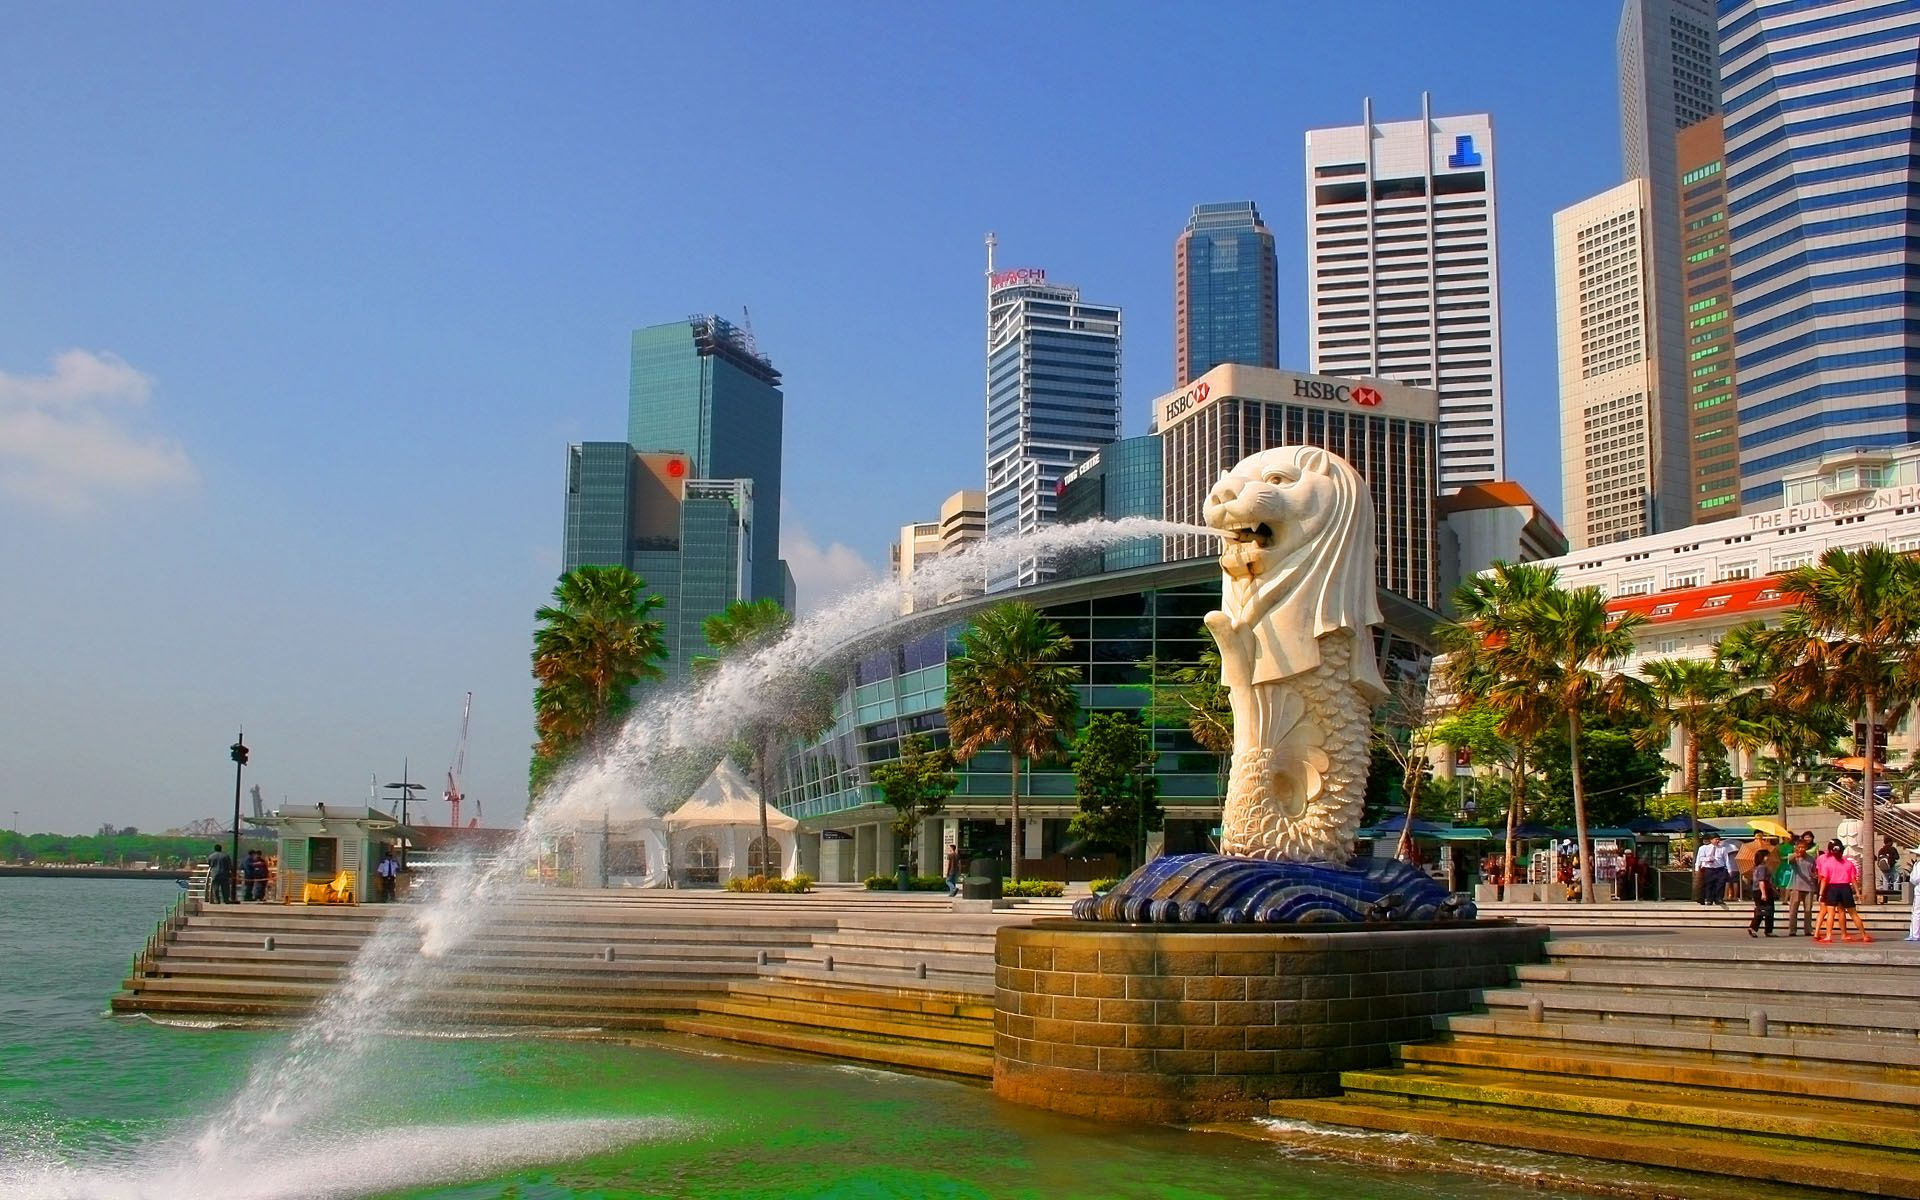 Singapore Is One Of Asia S Favourite Holiday Destination Holiday In Singapore Singapore Travel Singapore Tour